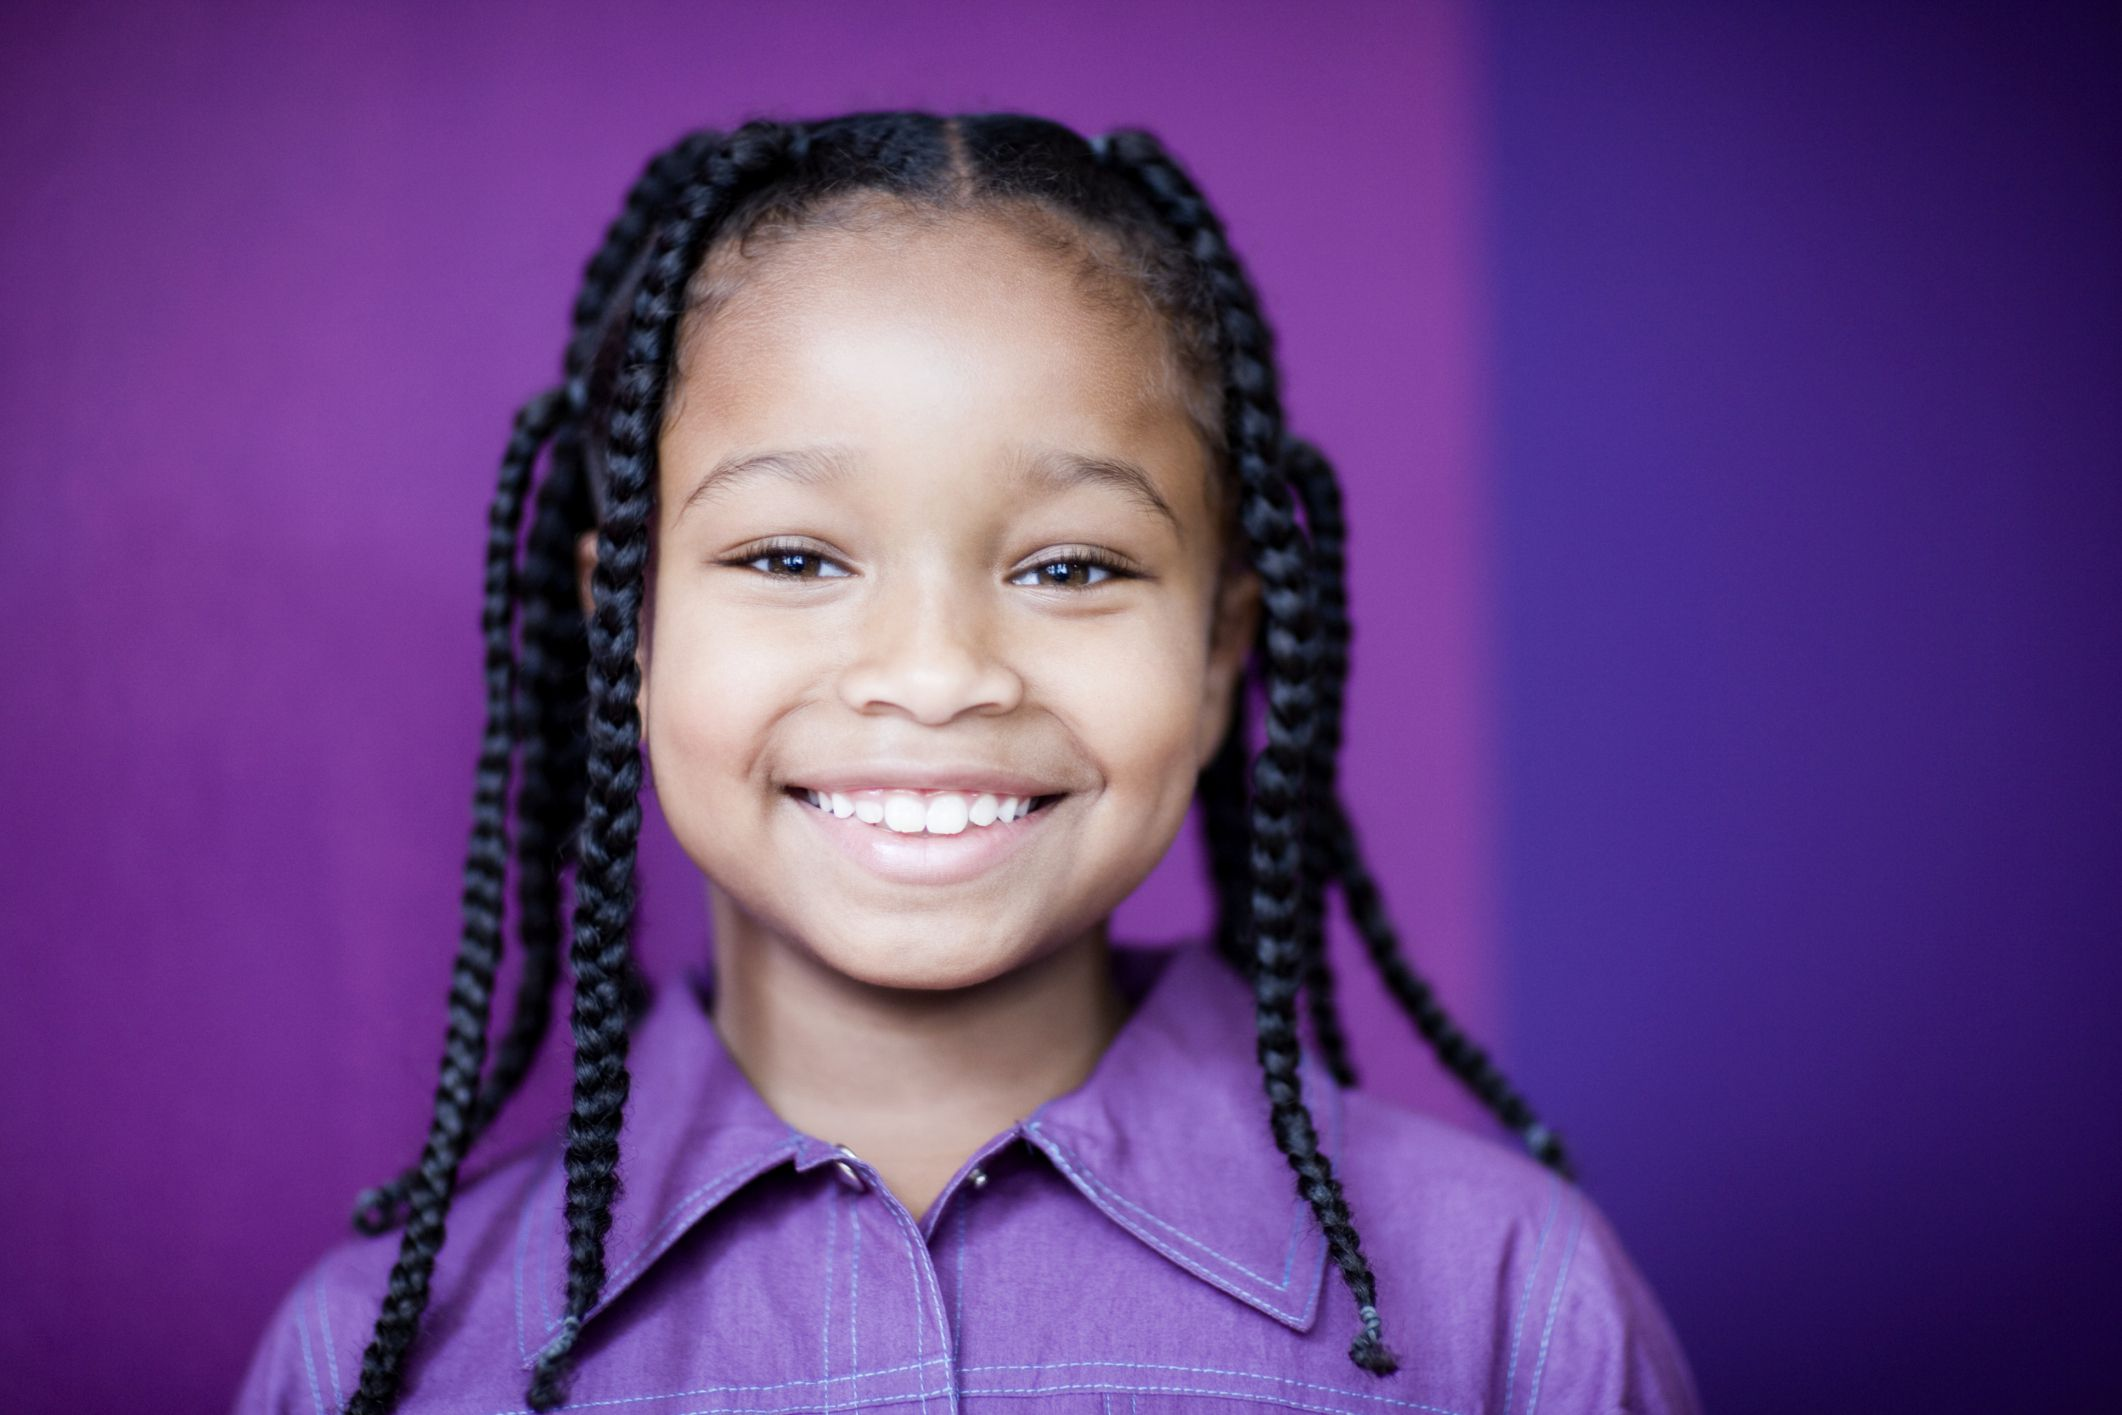 Self straight perm kit - Girl With Braids For Stretching Curls